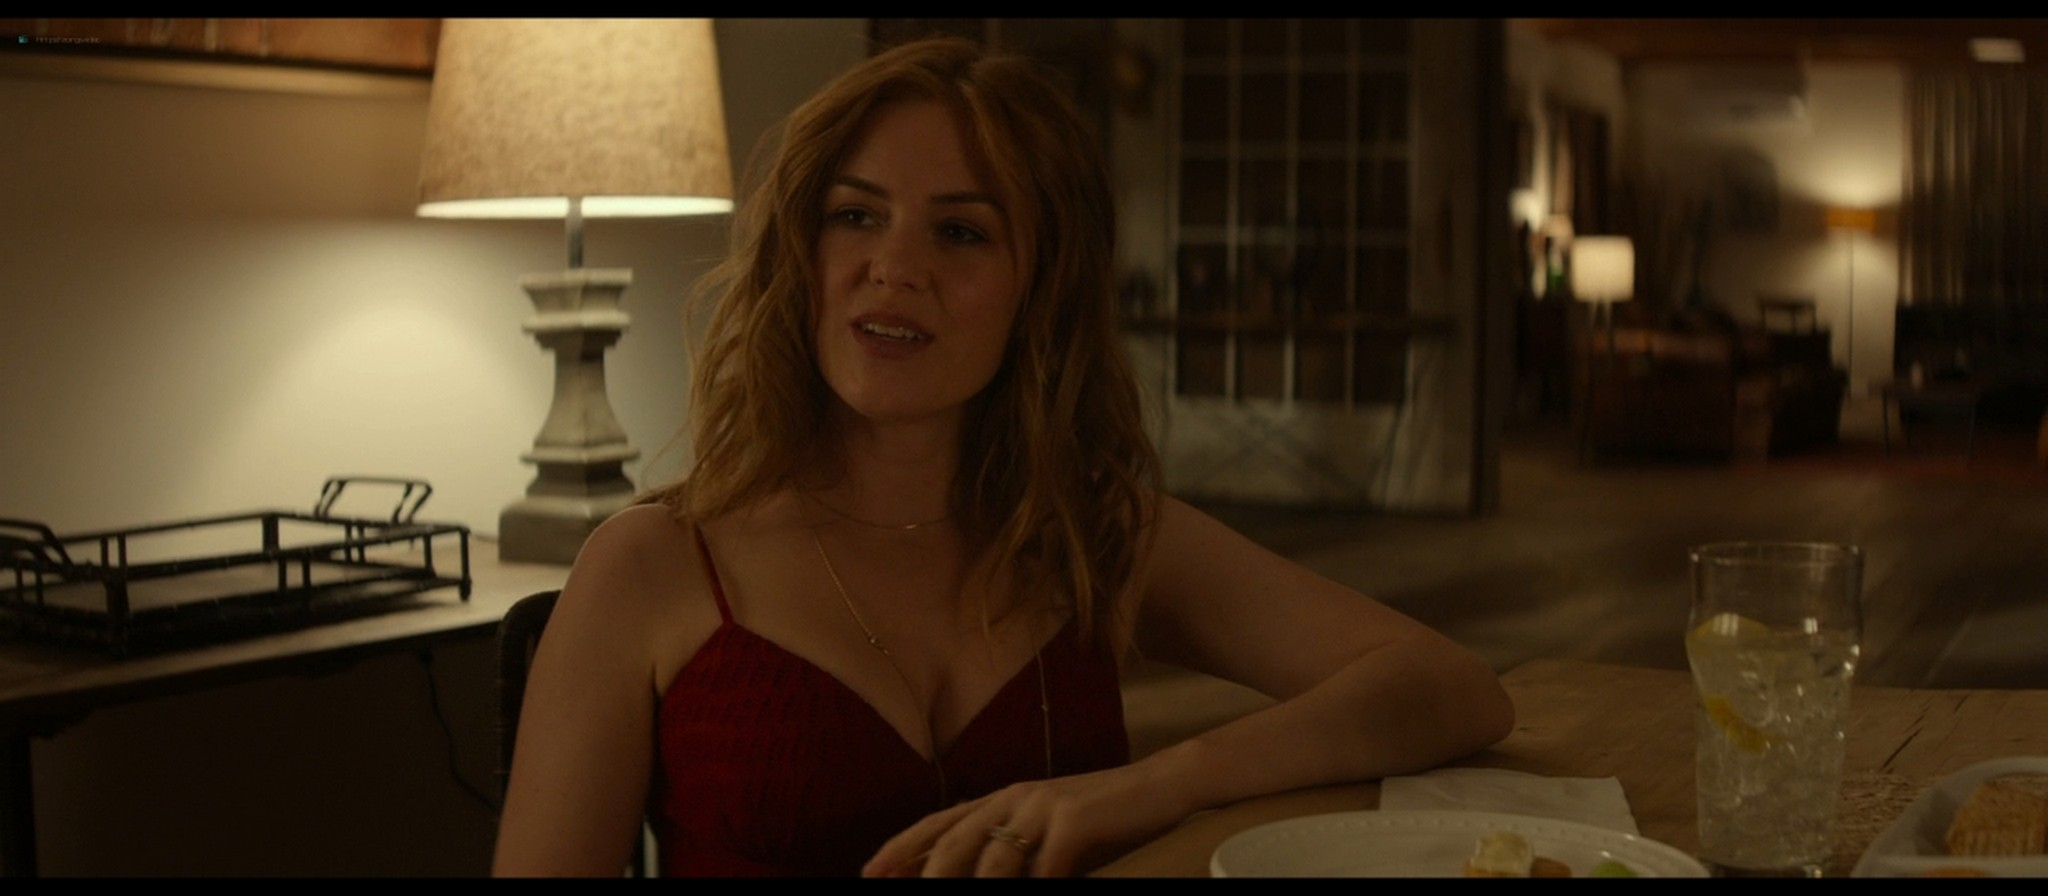 Isla Fisher hot and sexy - Visions (2015) 720p BluRay (12)